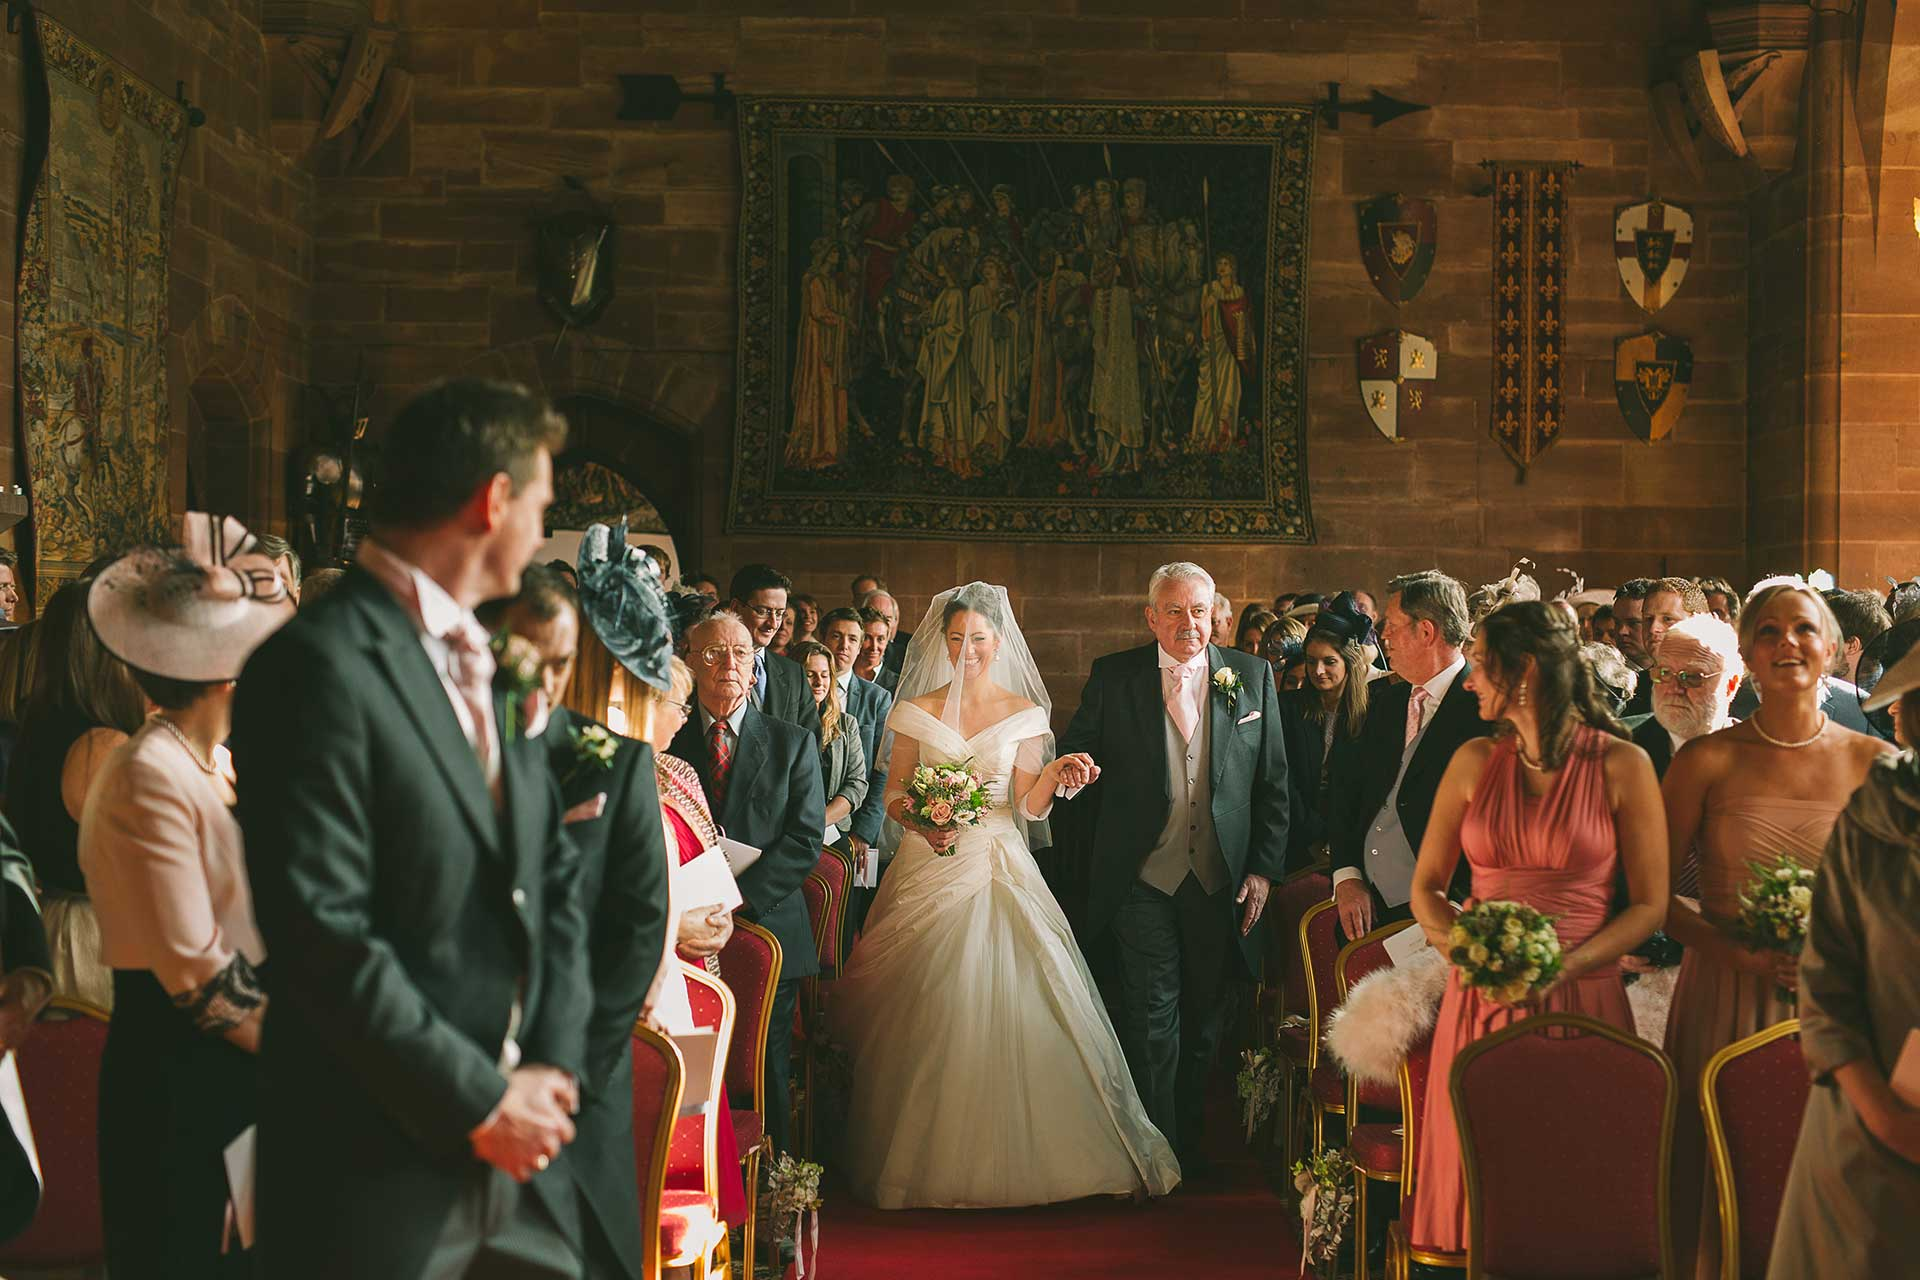 A peckforton castle bride makes her way down the aisle, taken by Qualified Shropshire Wedding Photographer Phil Barrett BA(hons) LMPA